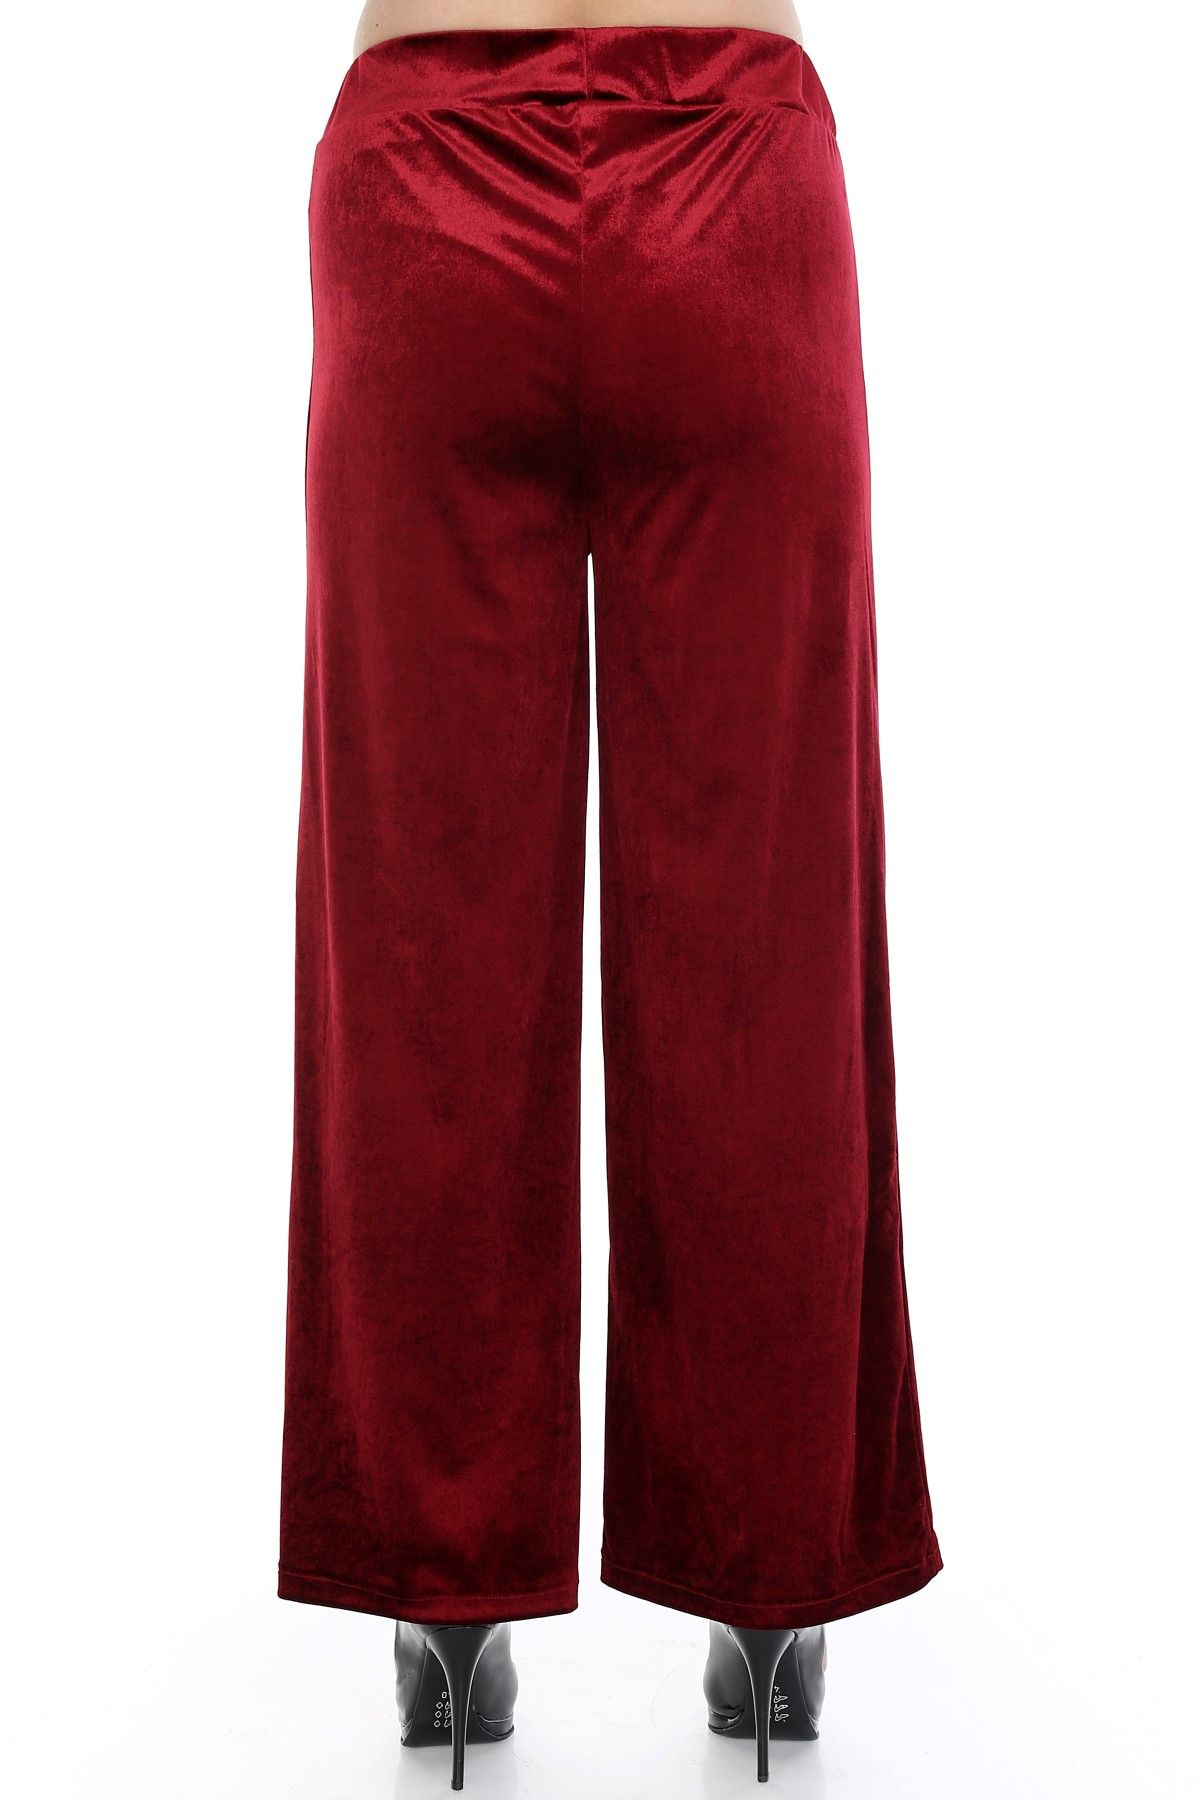 Boot Cut Pants-Red